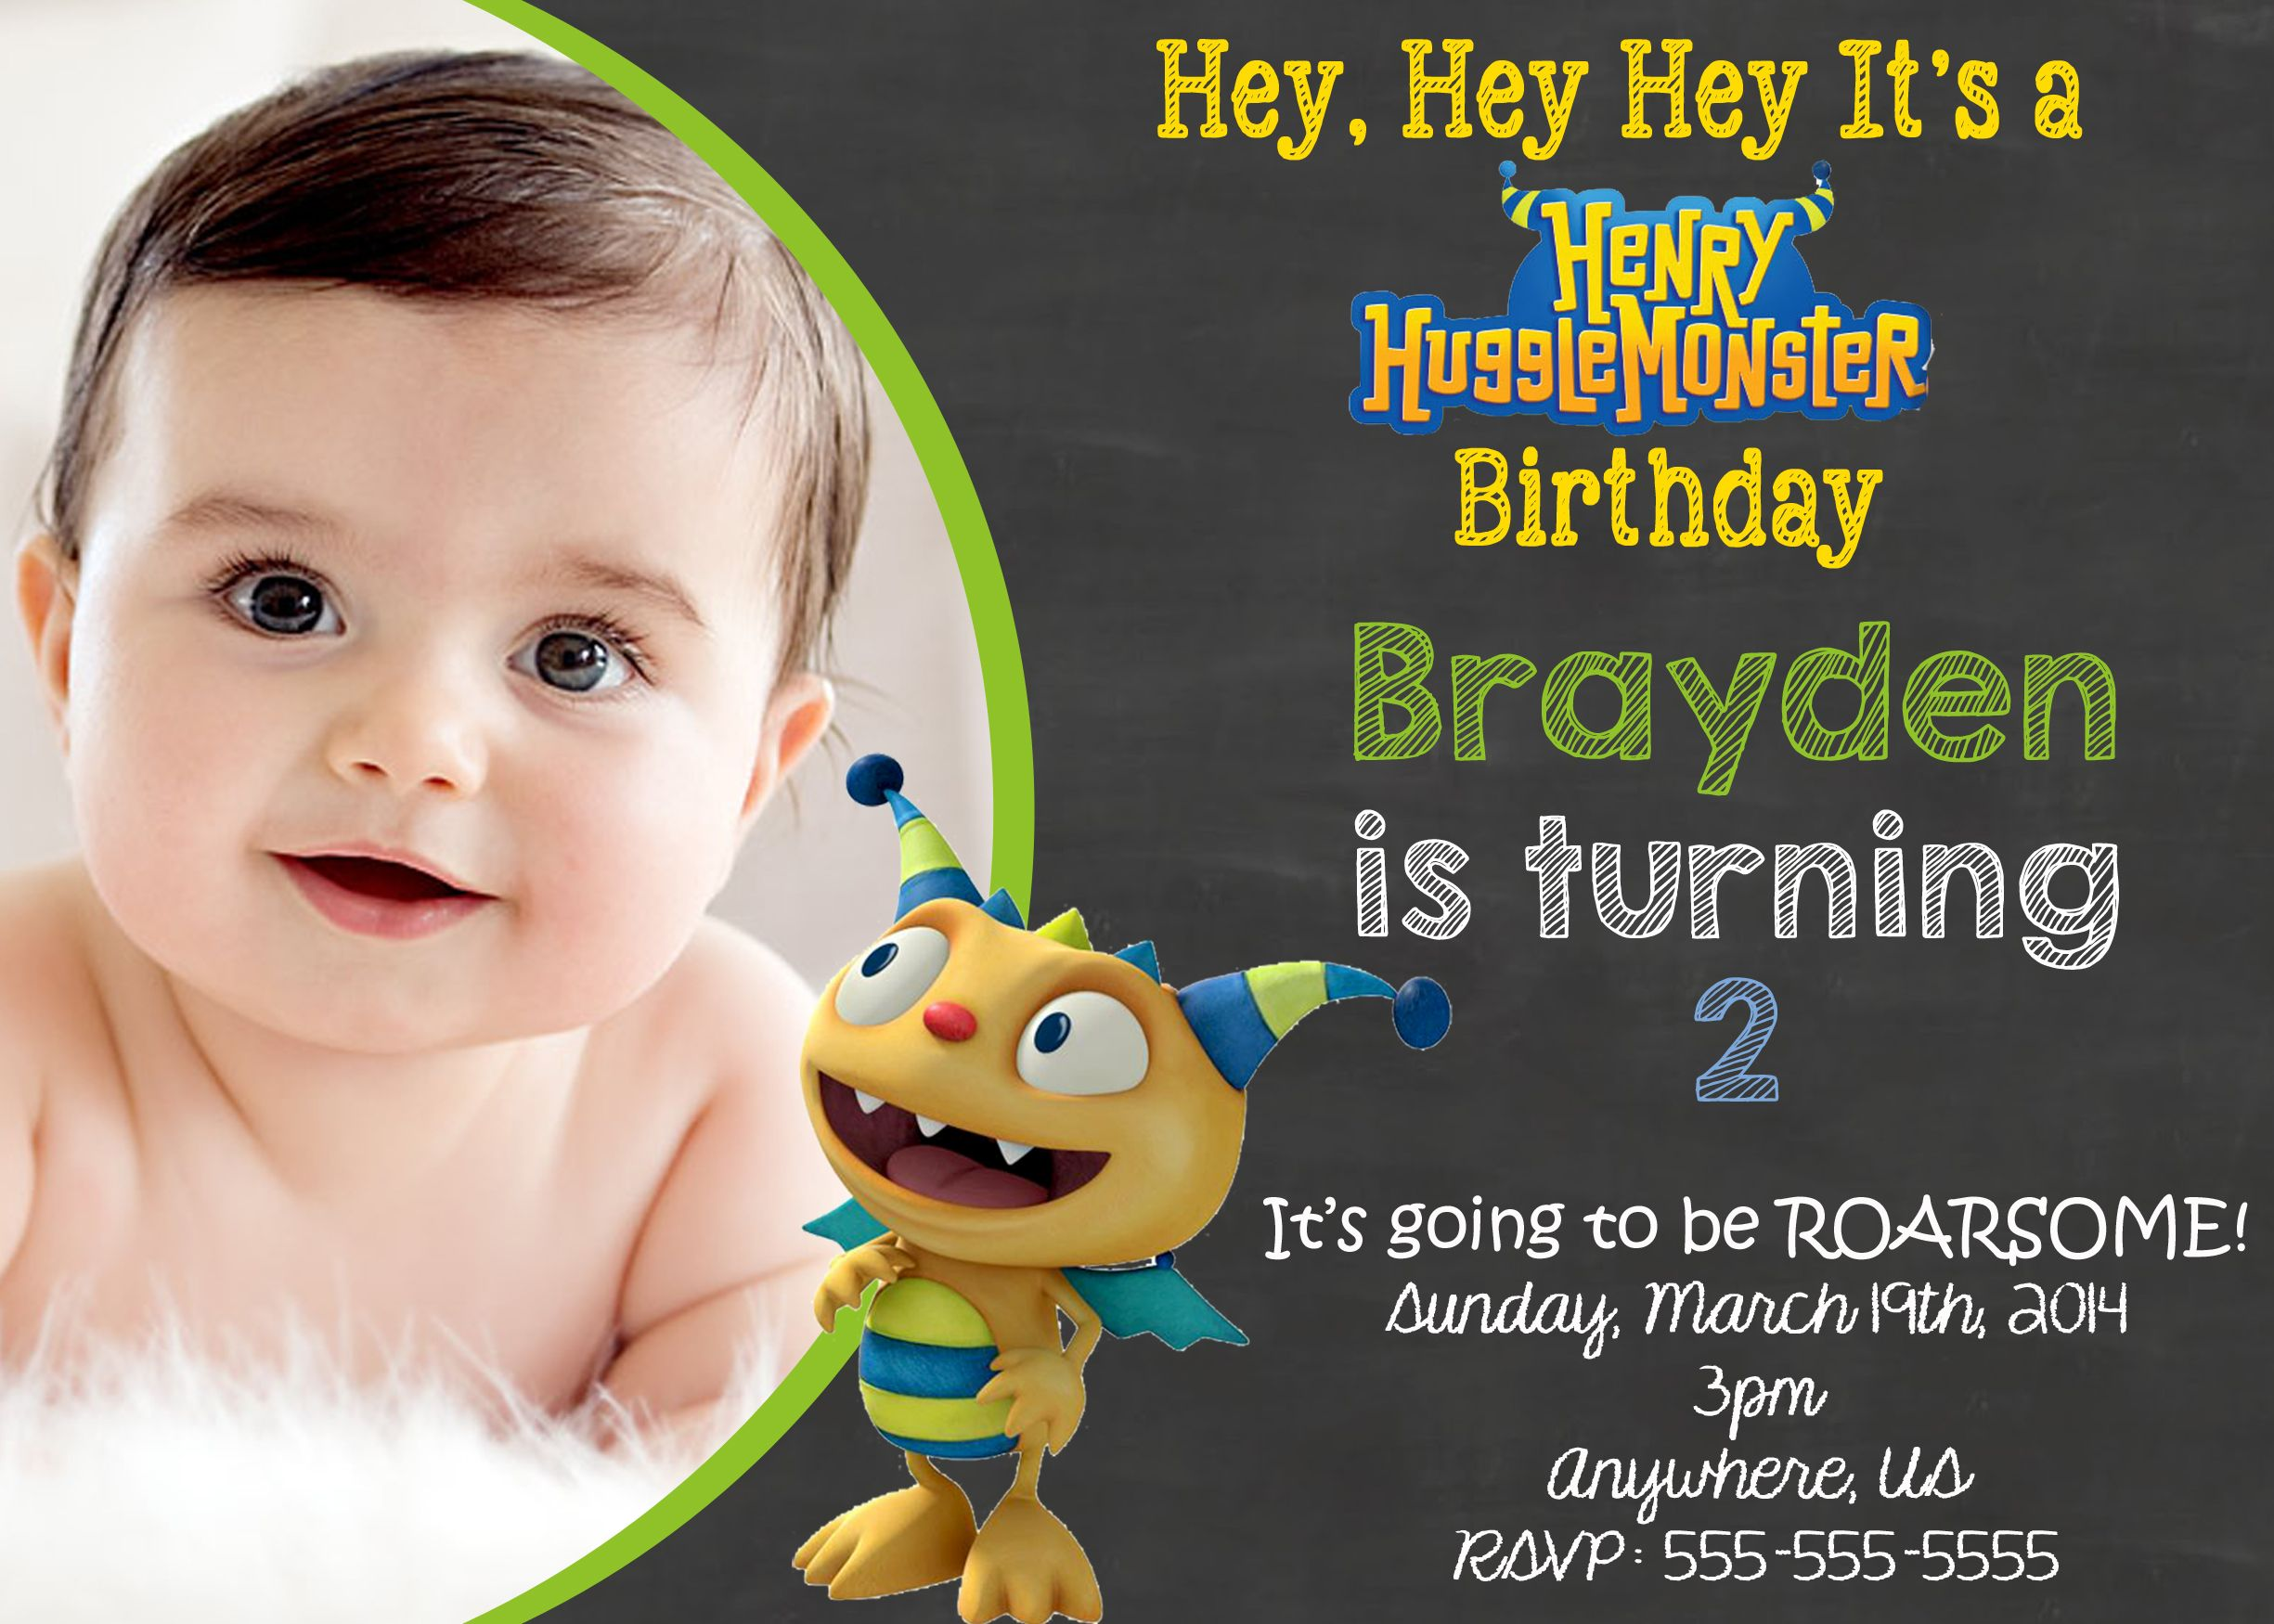 Henry Hungglemonster Birthday Invitations $8.99